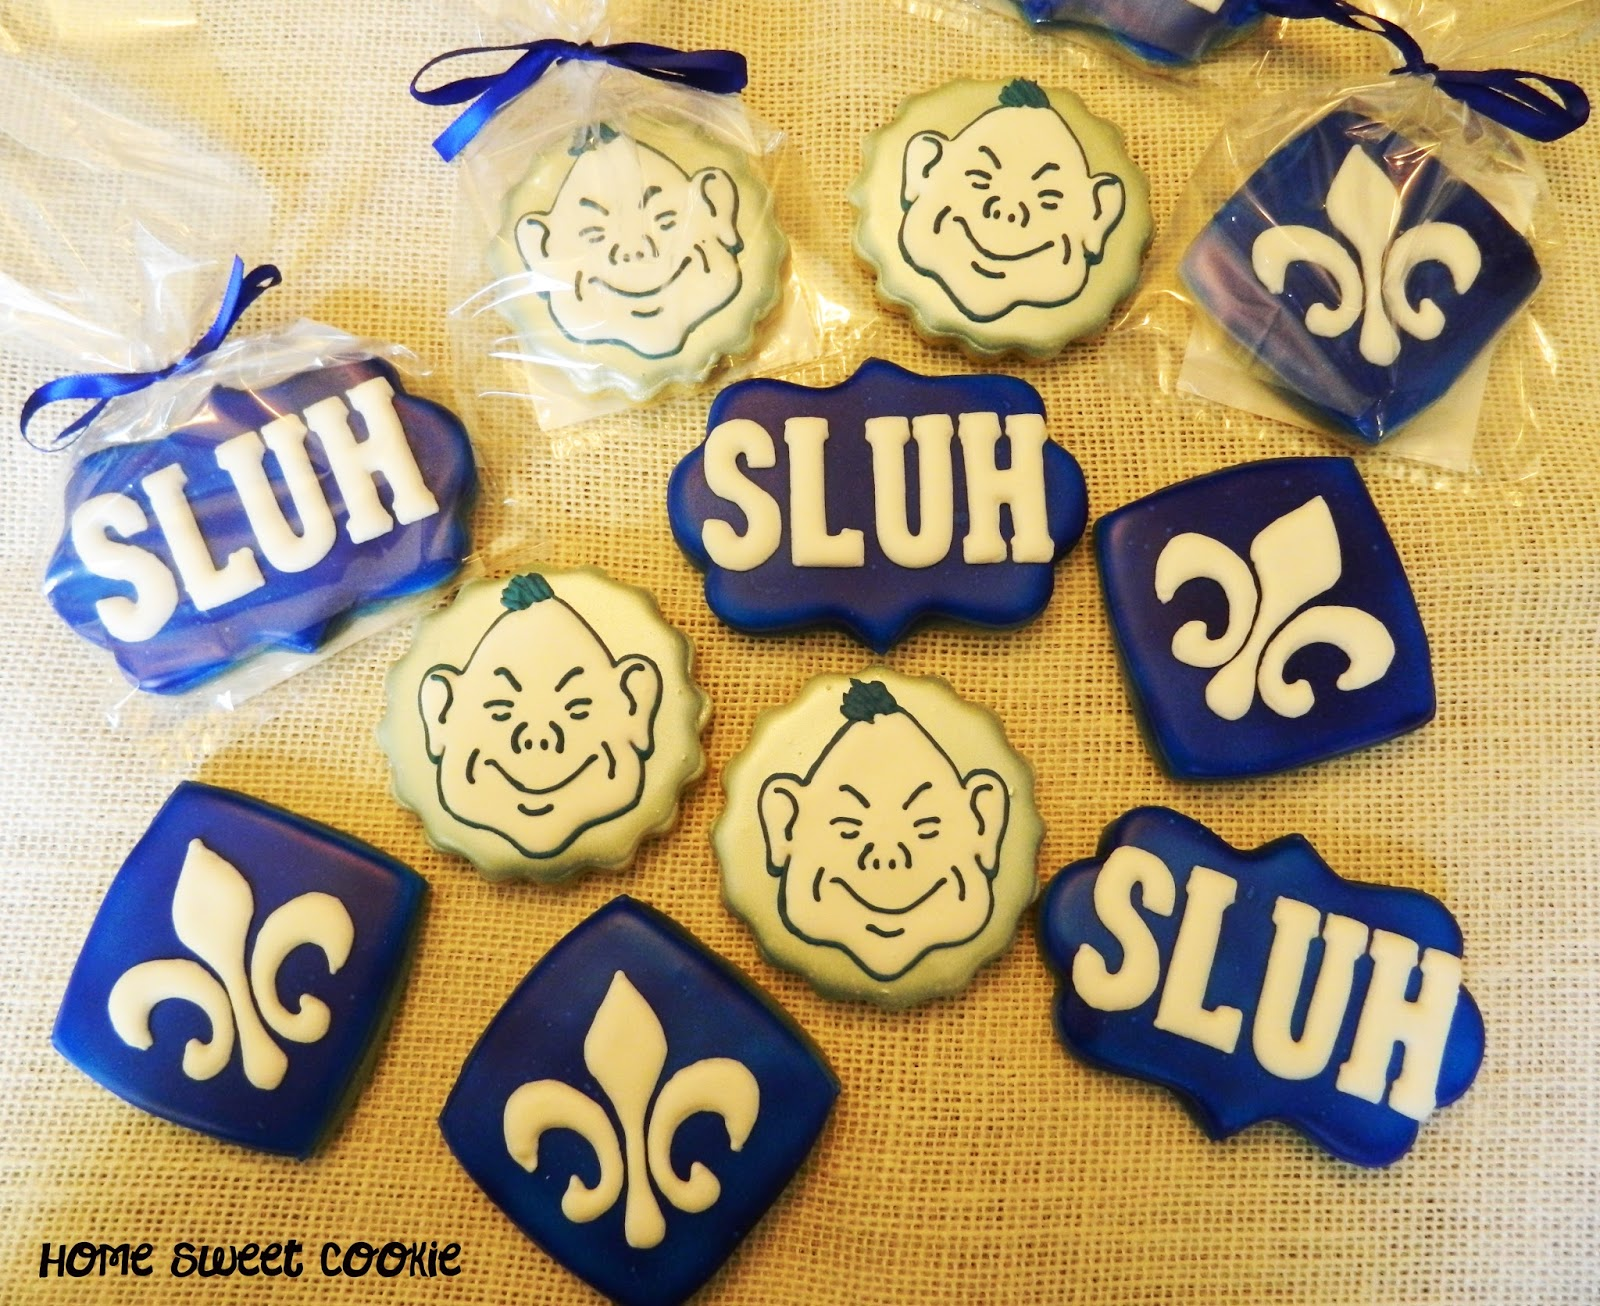 Home Sweet Cookie St Louis University High School cookies